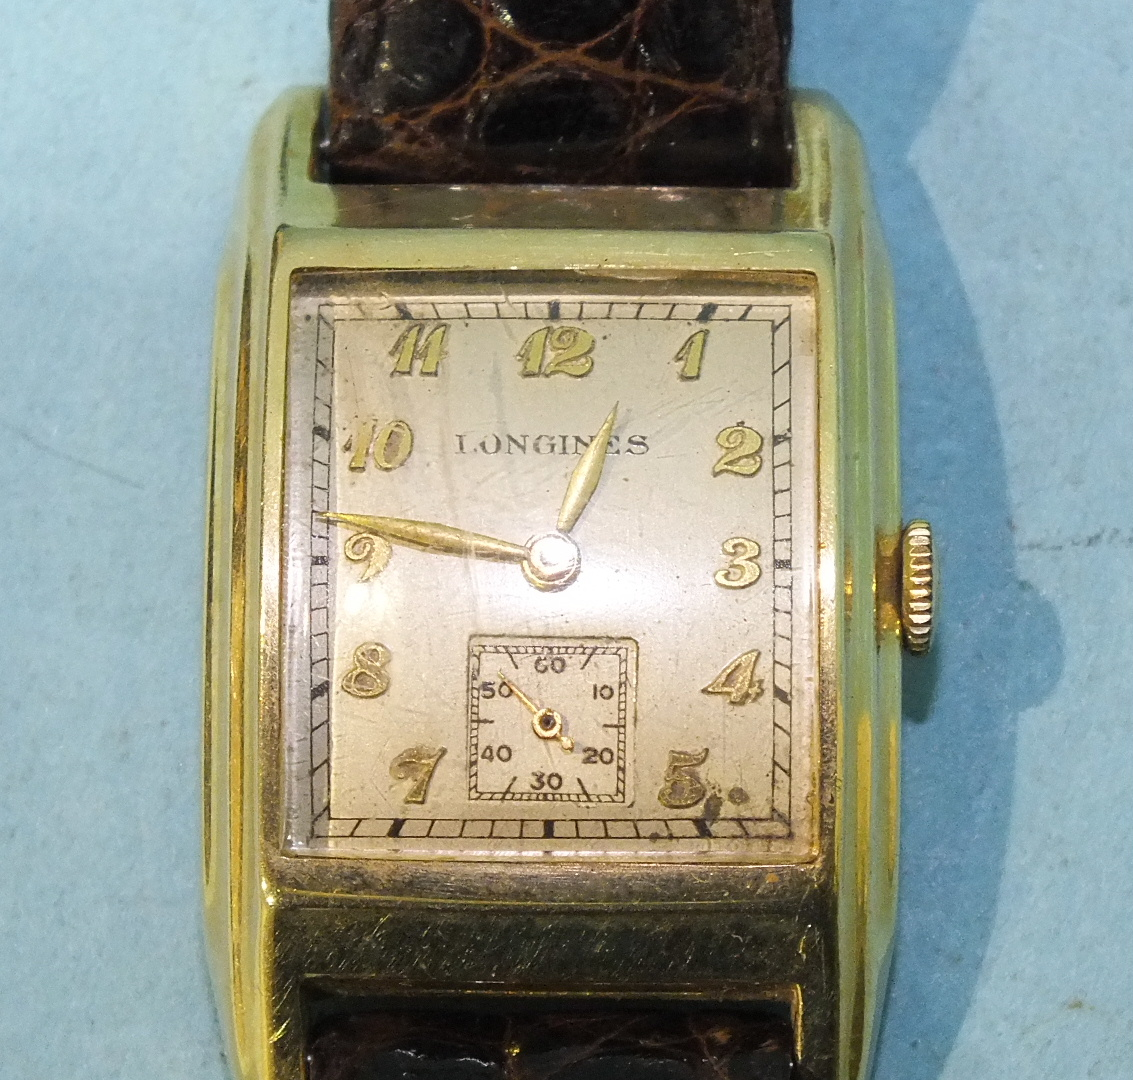 Lot 317 - Longines, a gent's 14ct gold tank watch on leather strap, boxed, (not working).